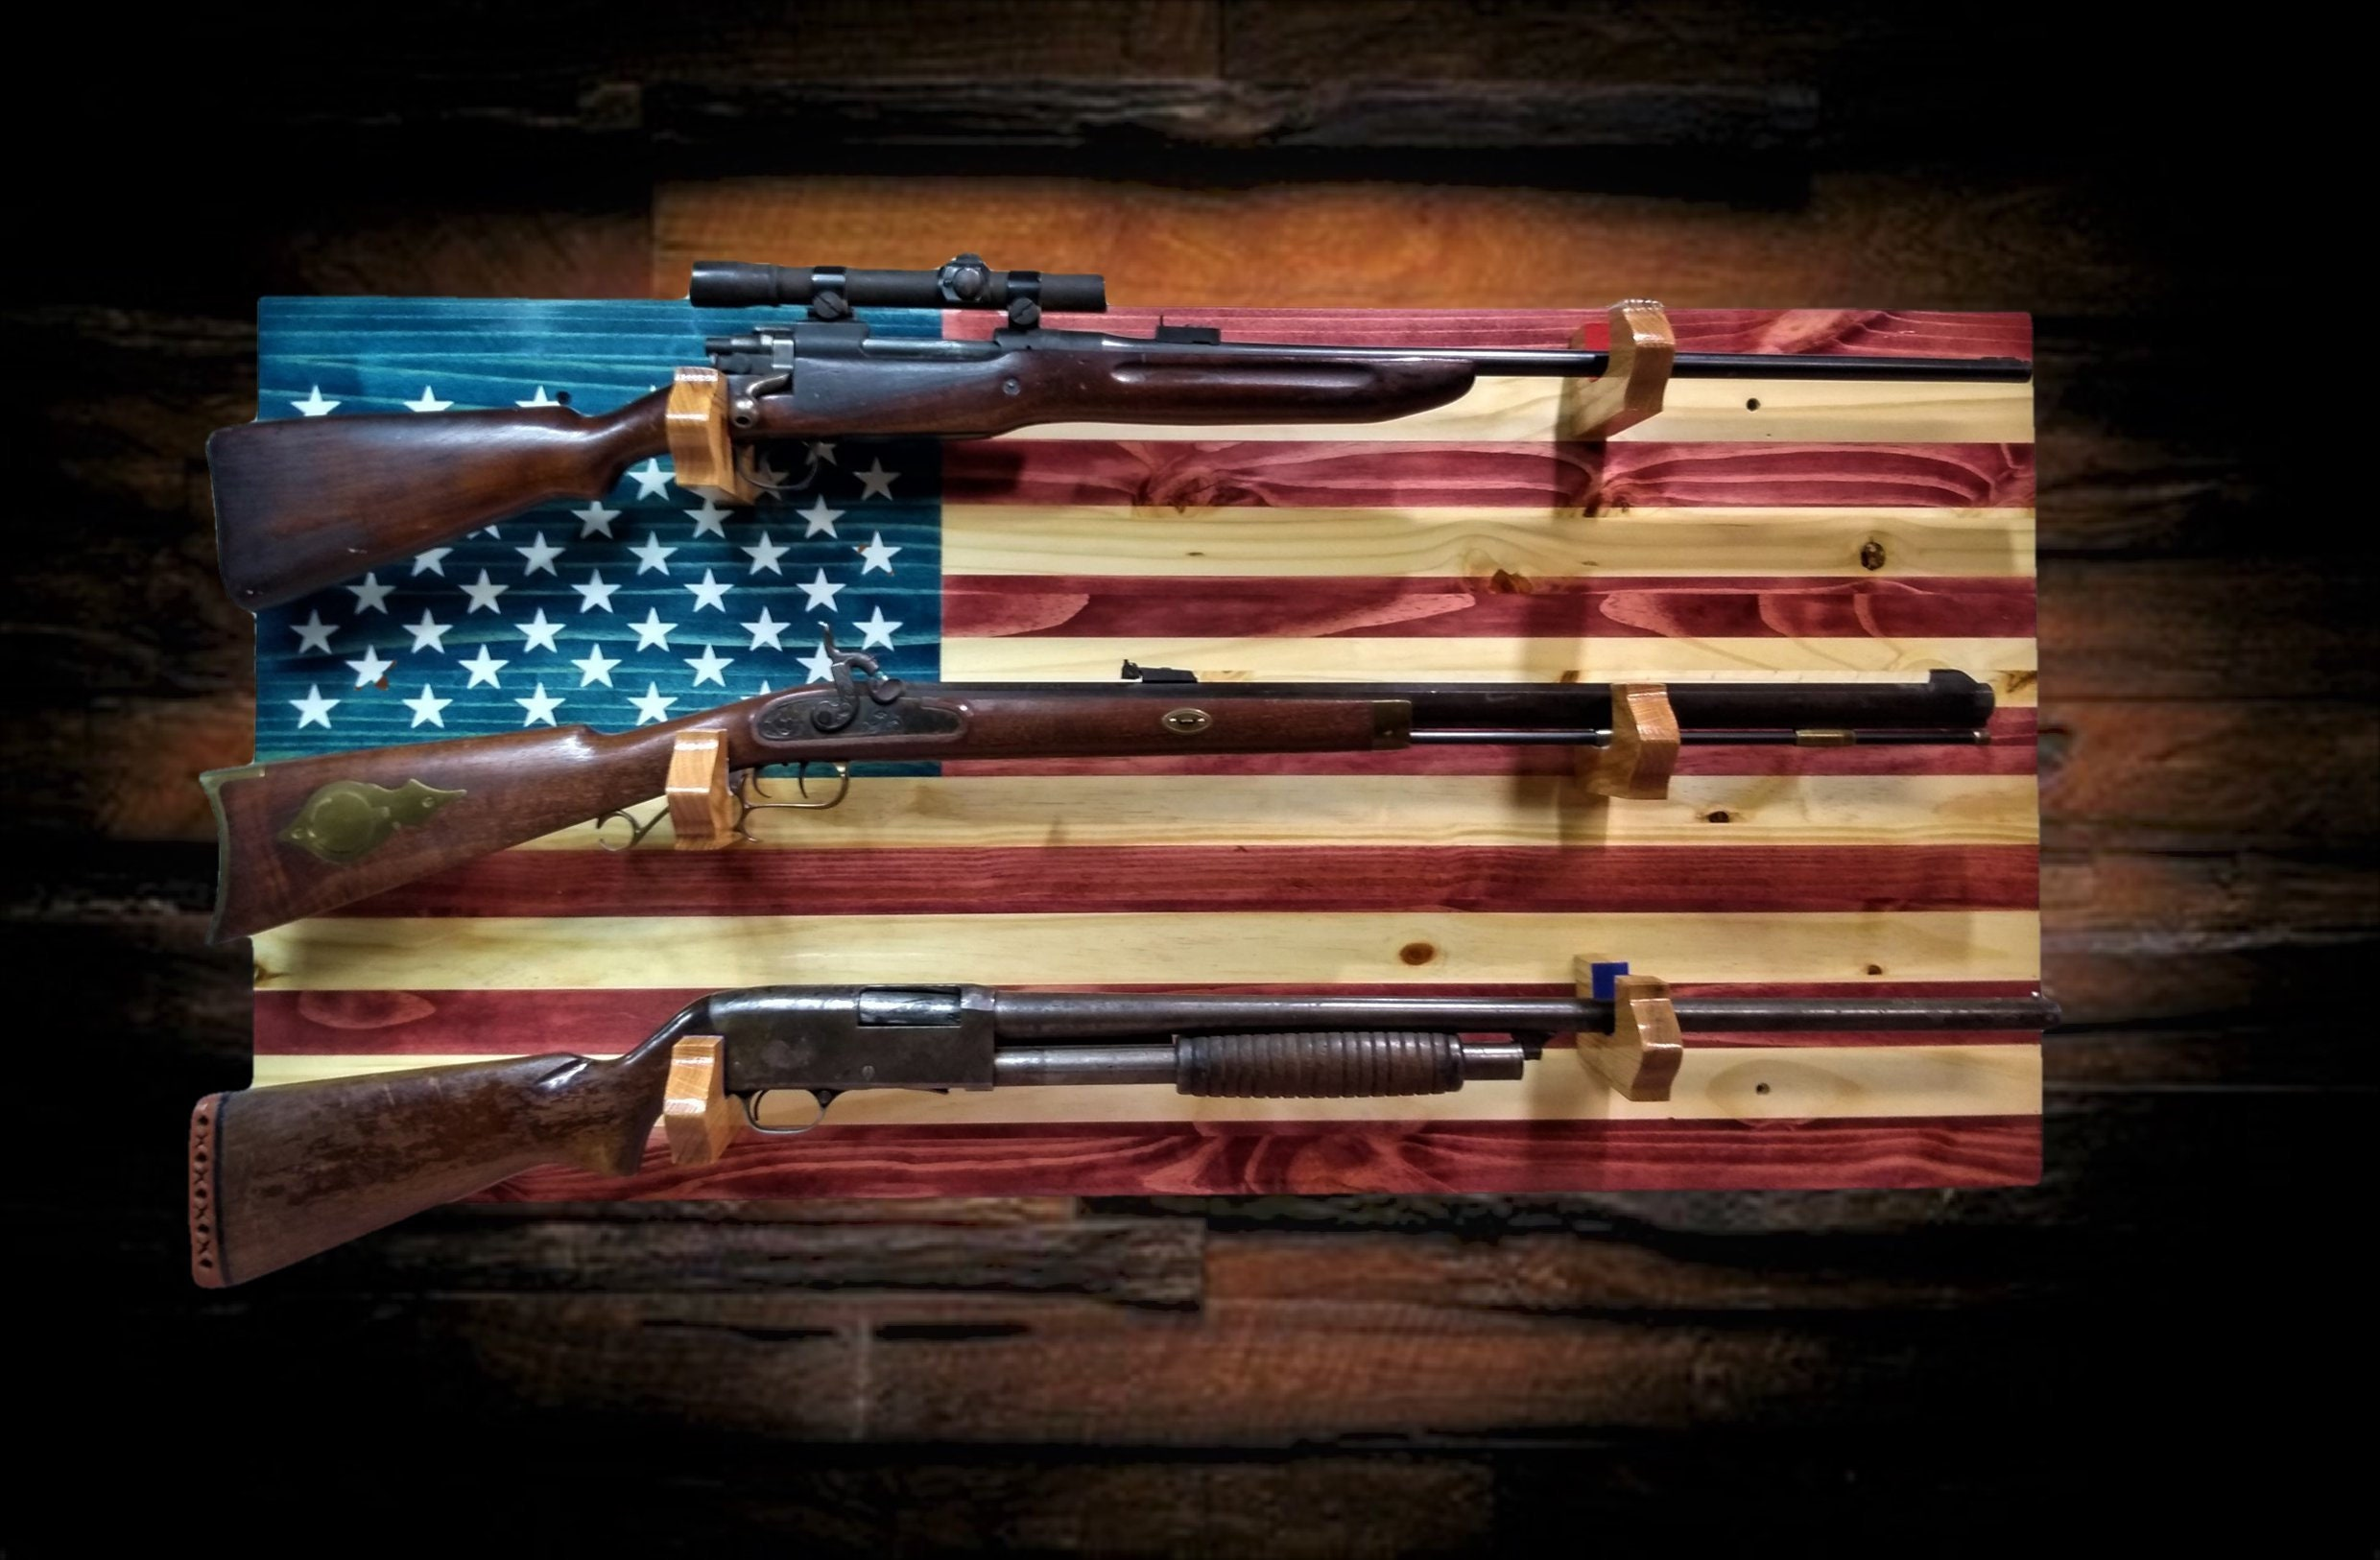 2nd Amendment American Flag Display